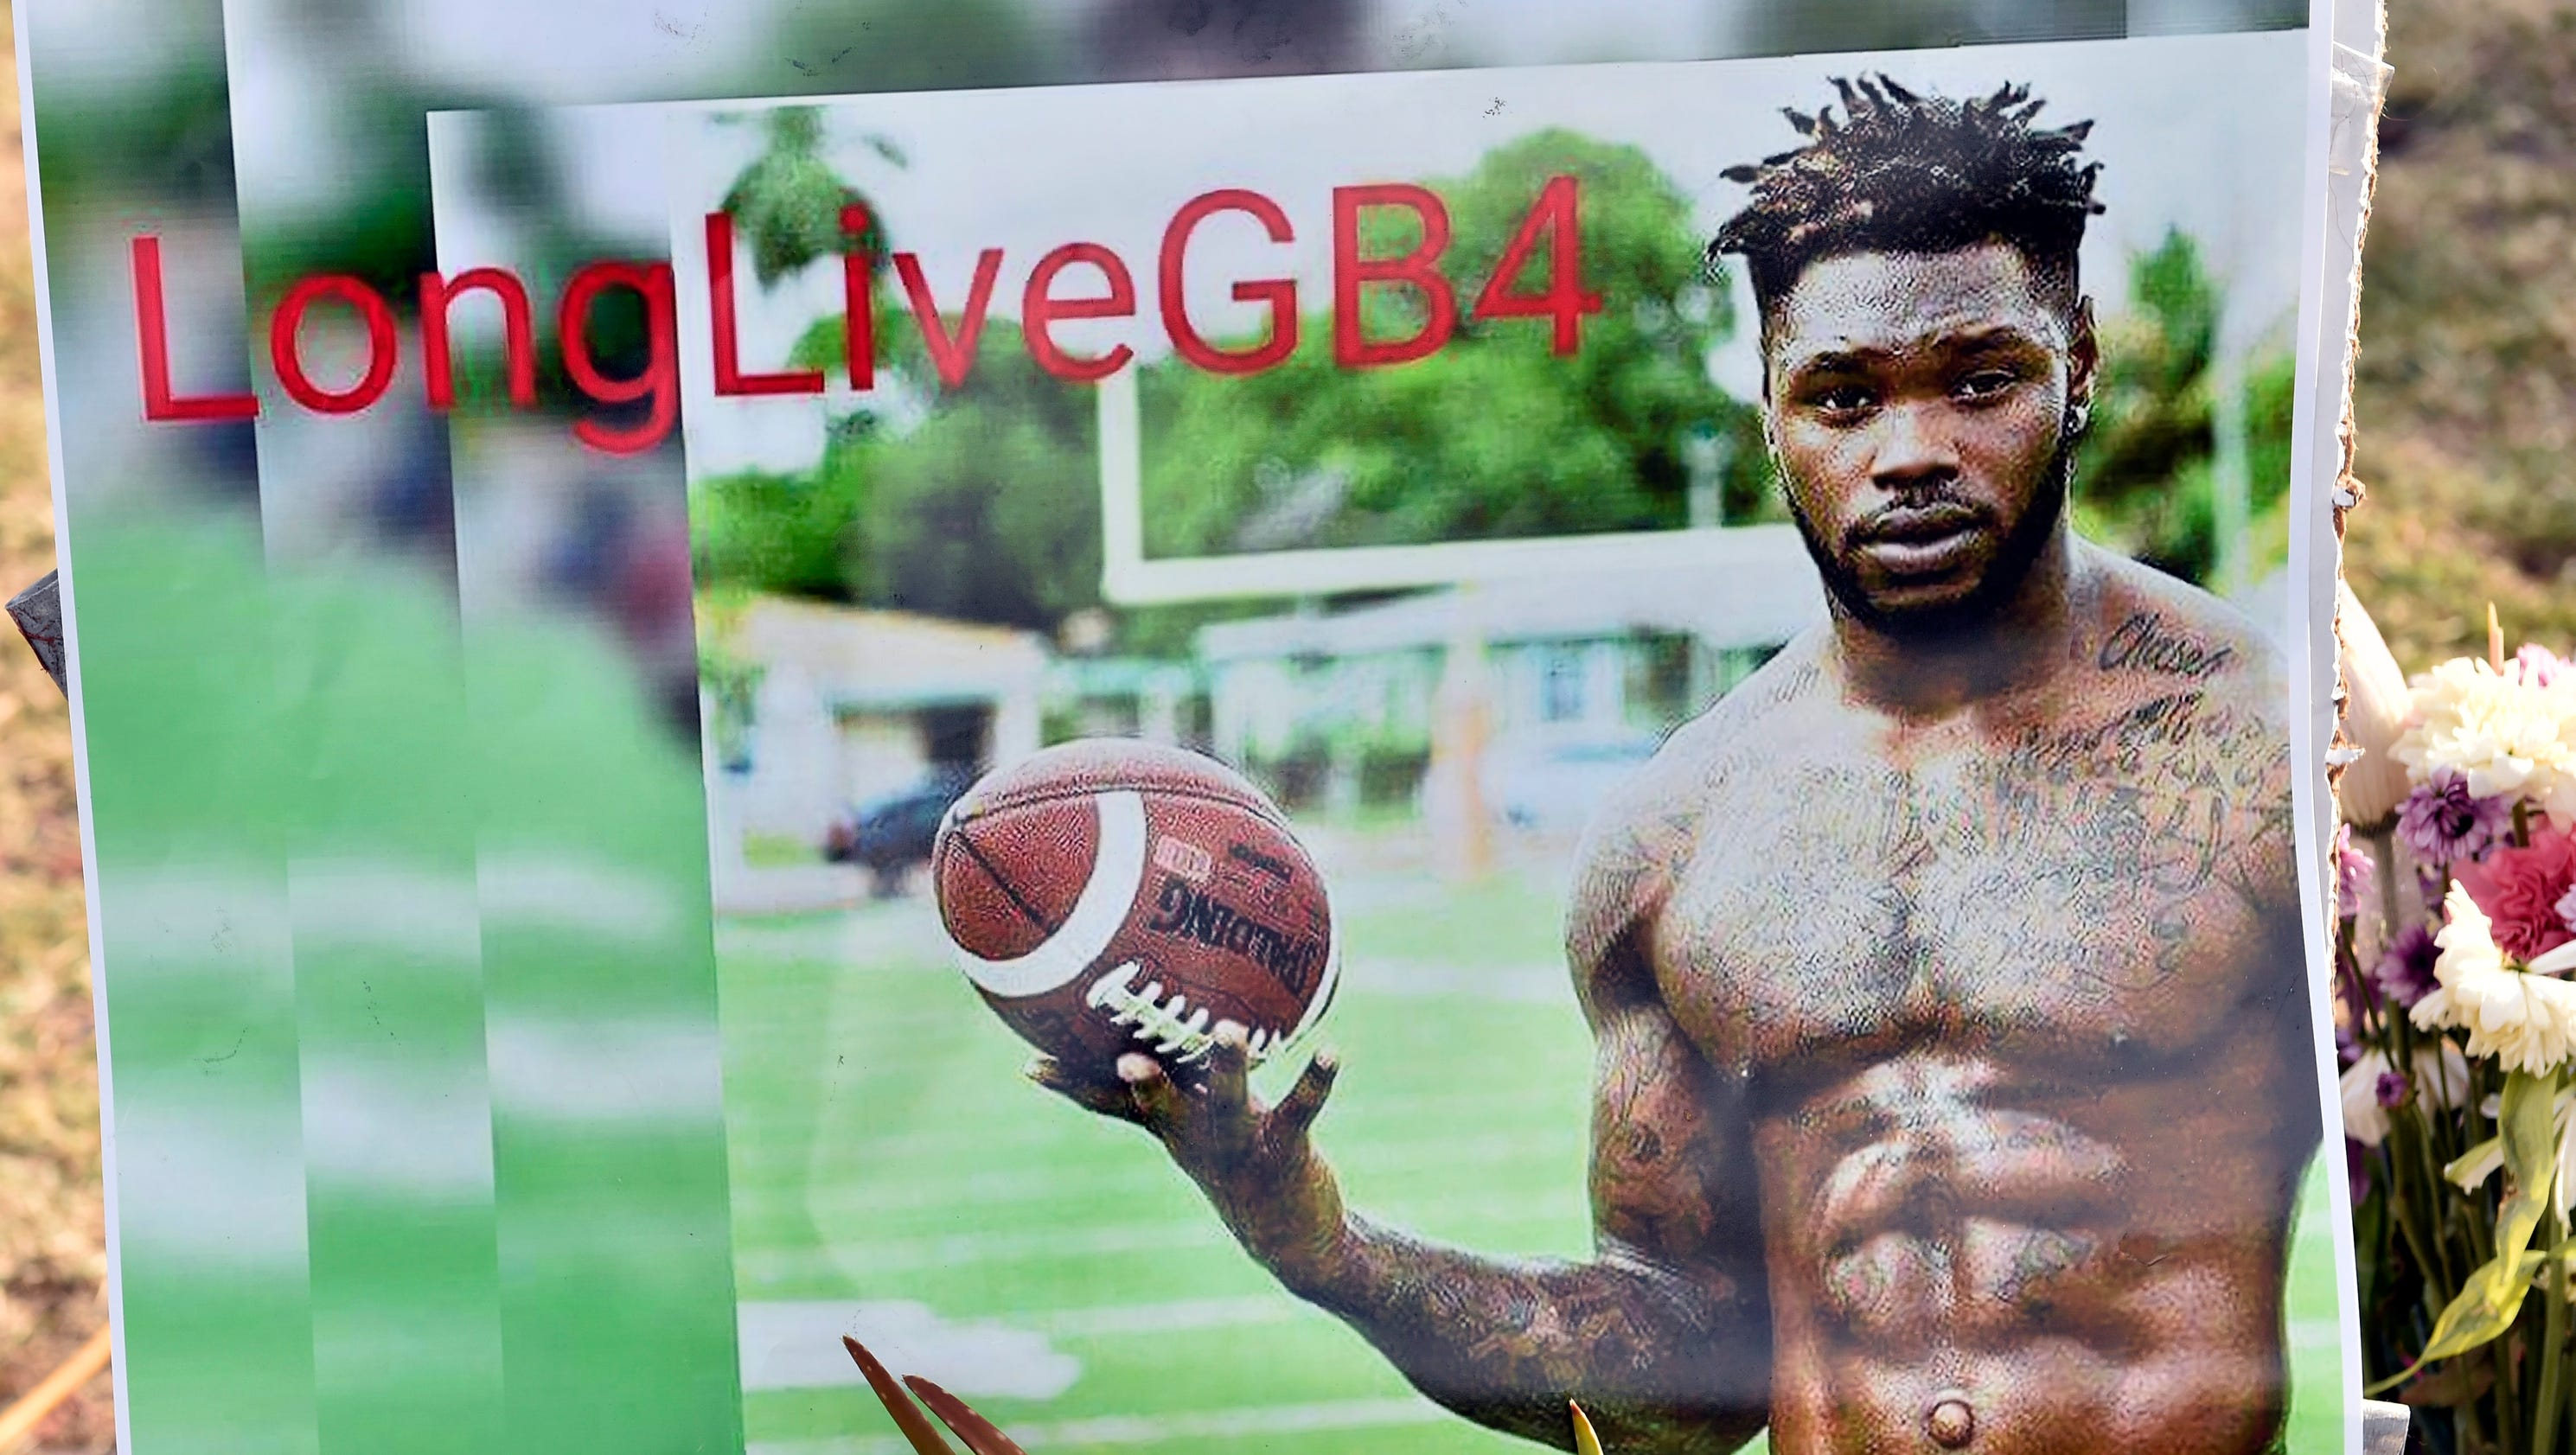 Why was former notre dame player greg bryant gunned down